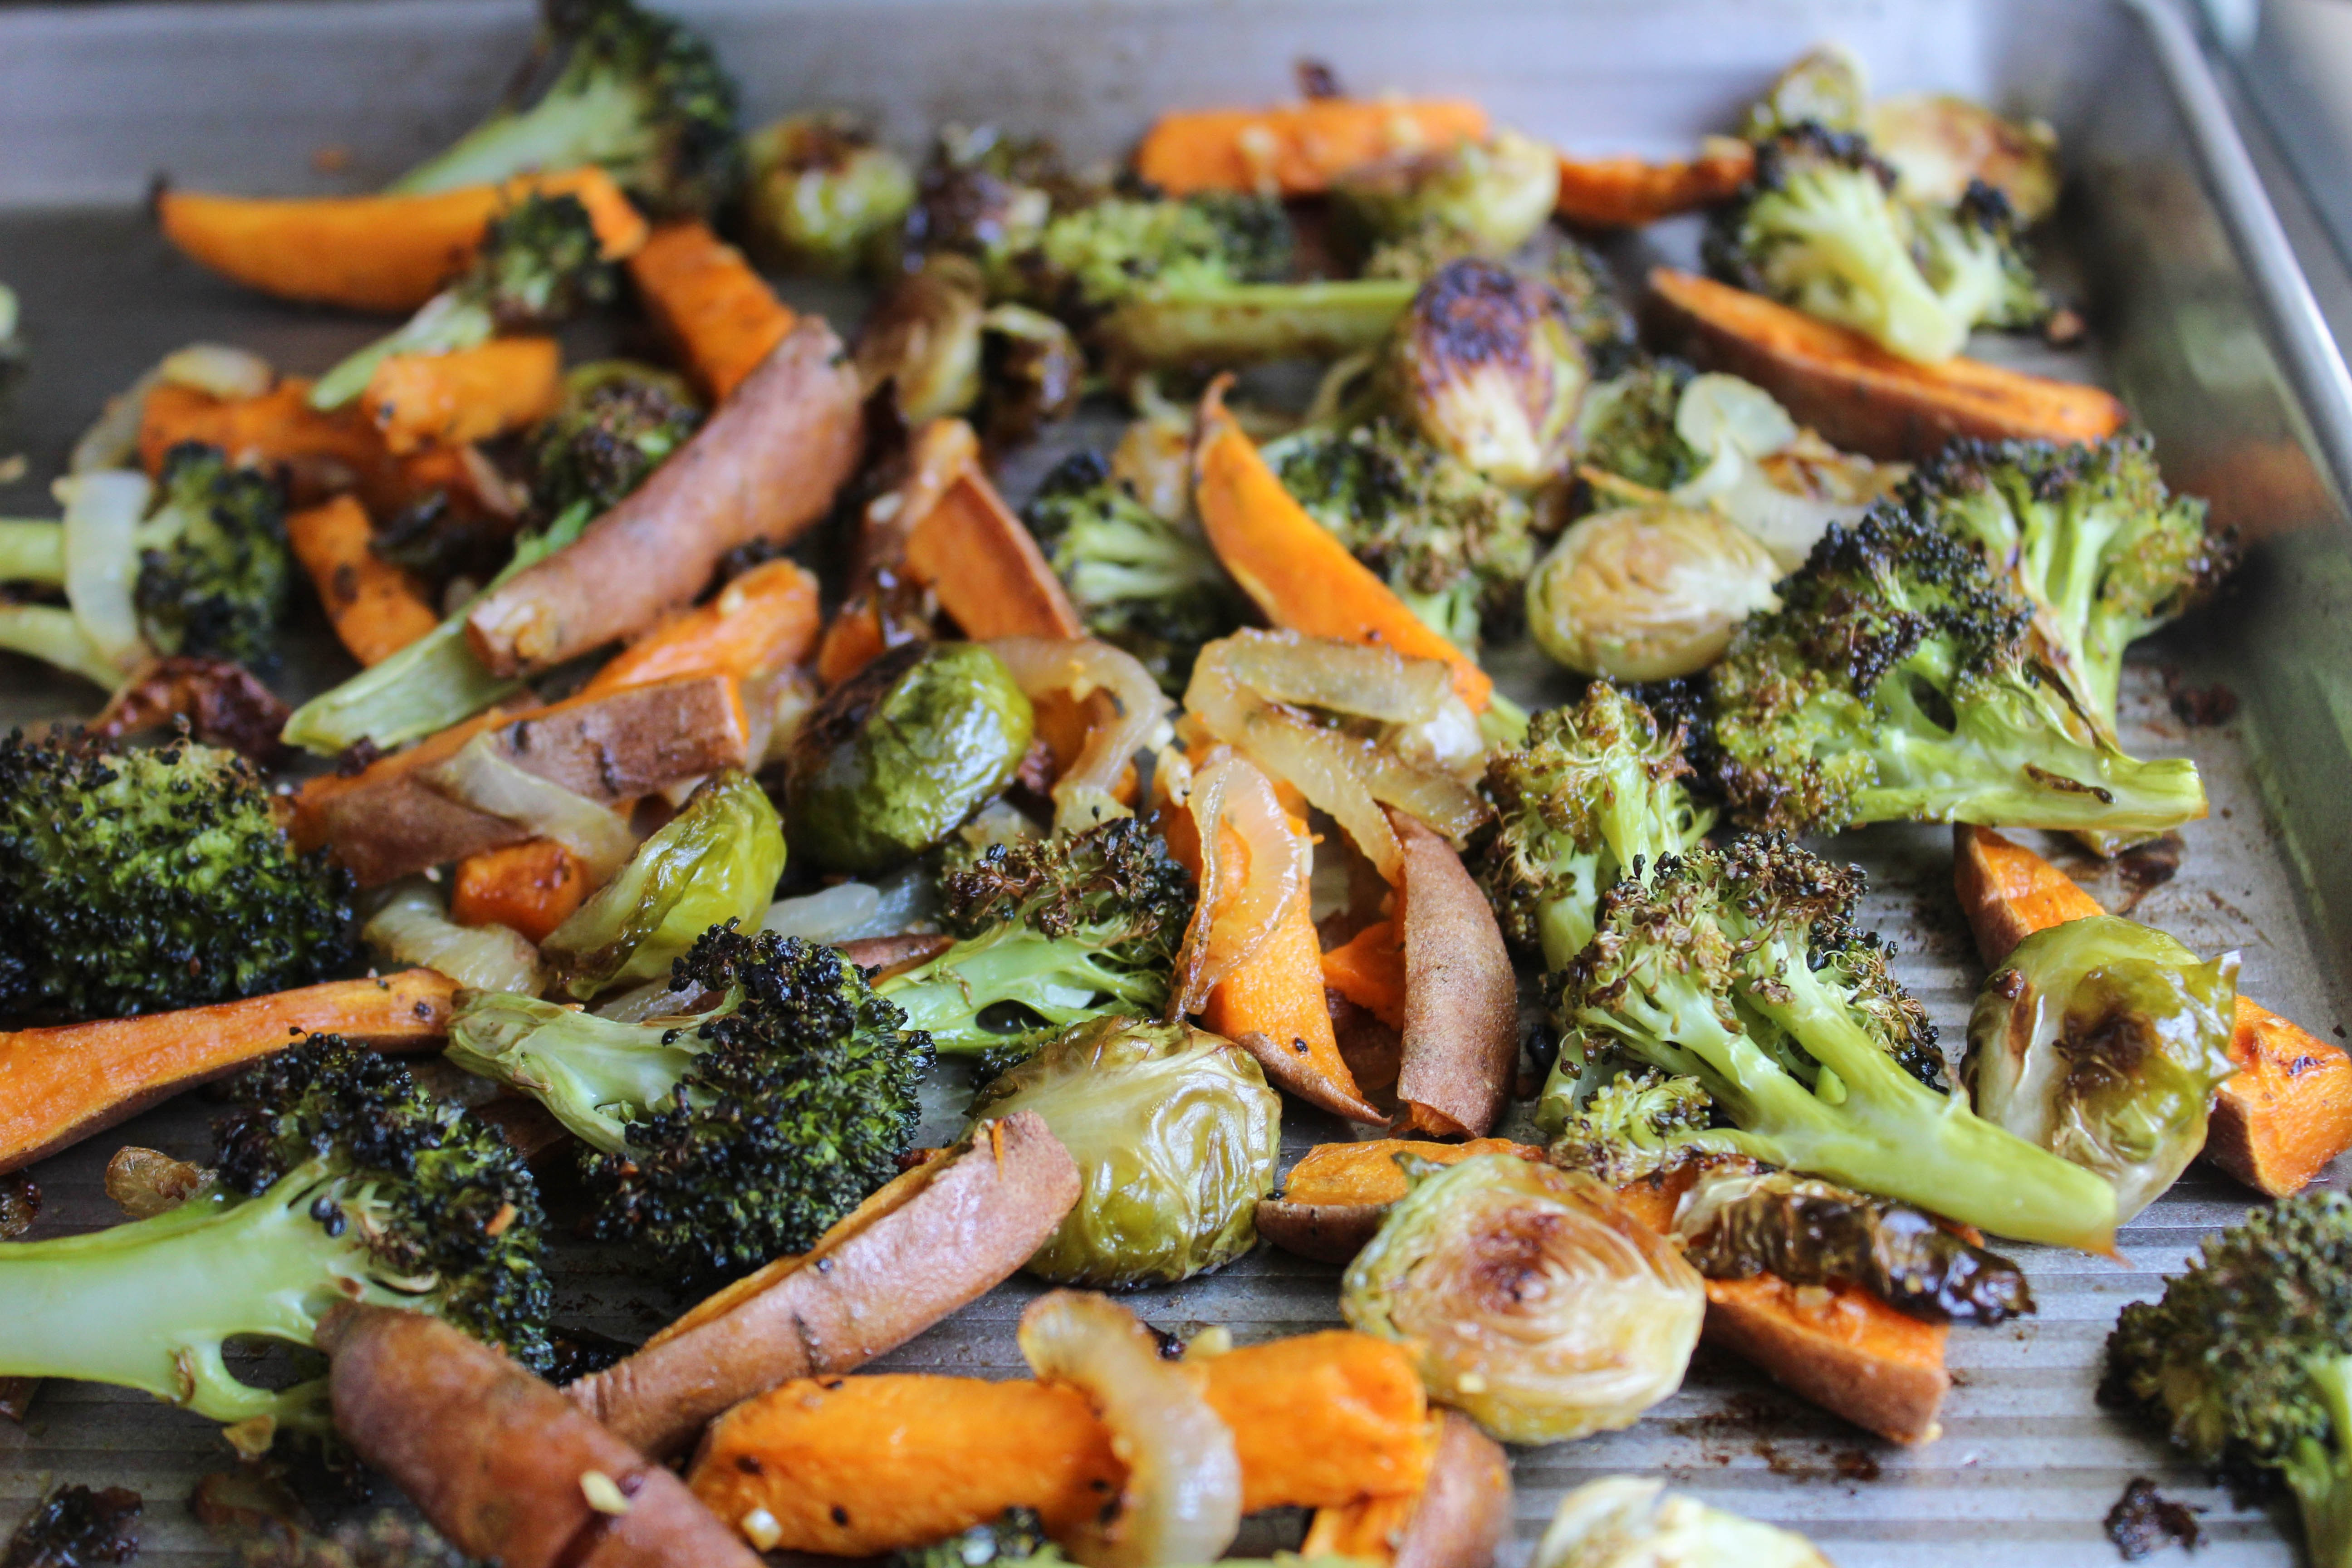 Roasted Fall Vegetables Best Recipes Ever  The BEST Garlic Roasted Veggies What s The Oven For